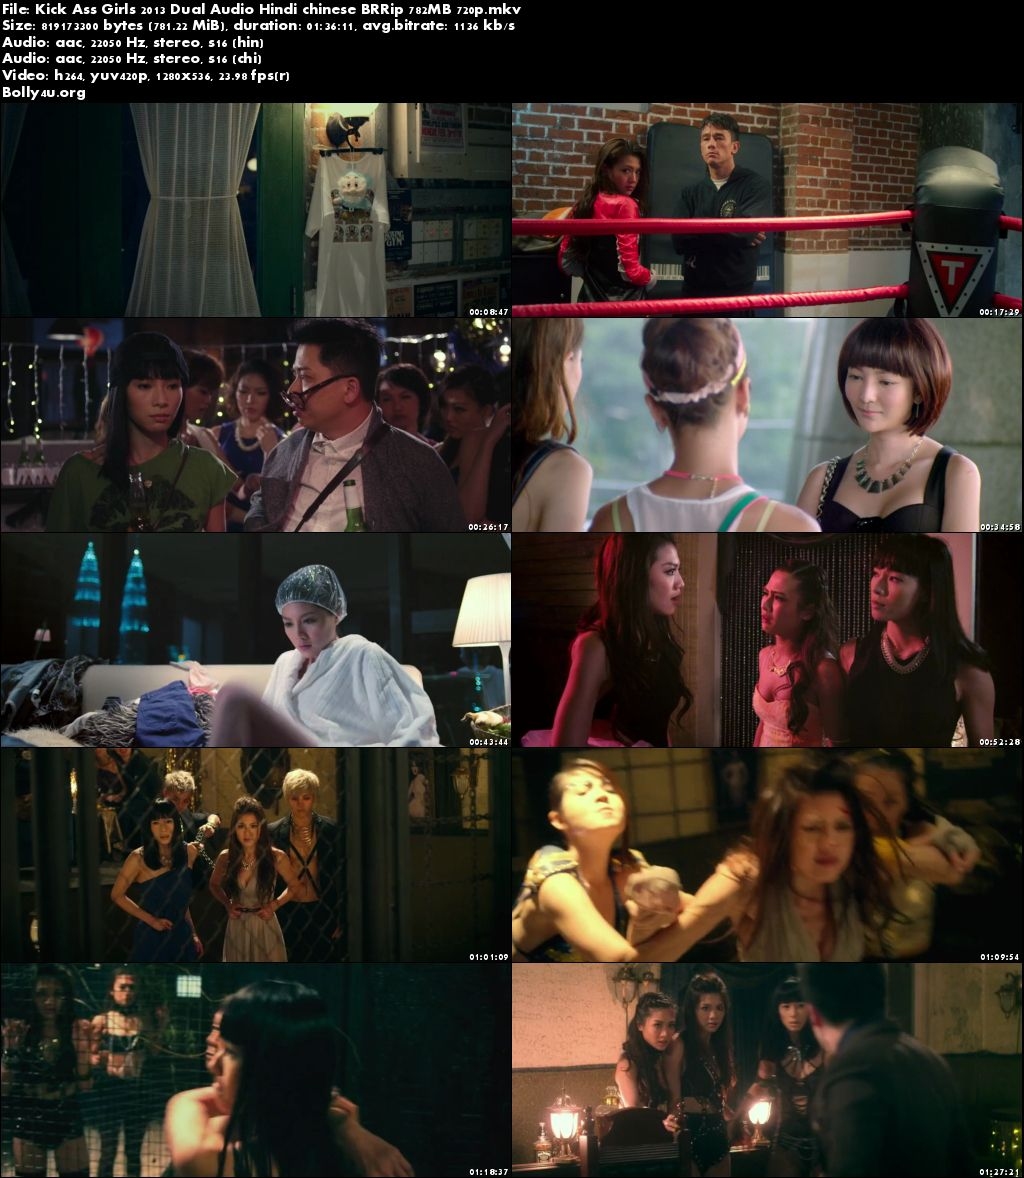 Kick Ass Girls 2013 BRRip 750MB Hindi Dual Audio 720p Download